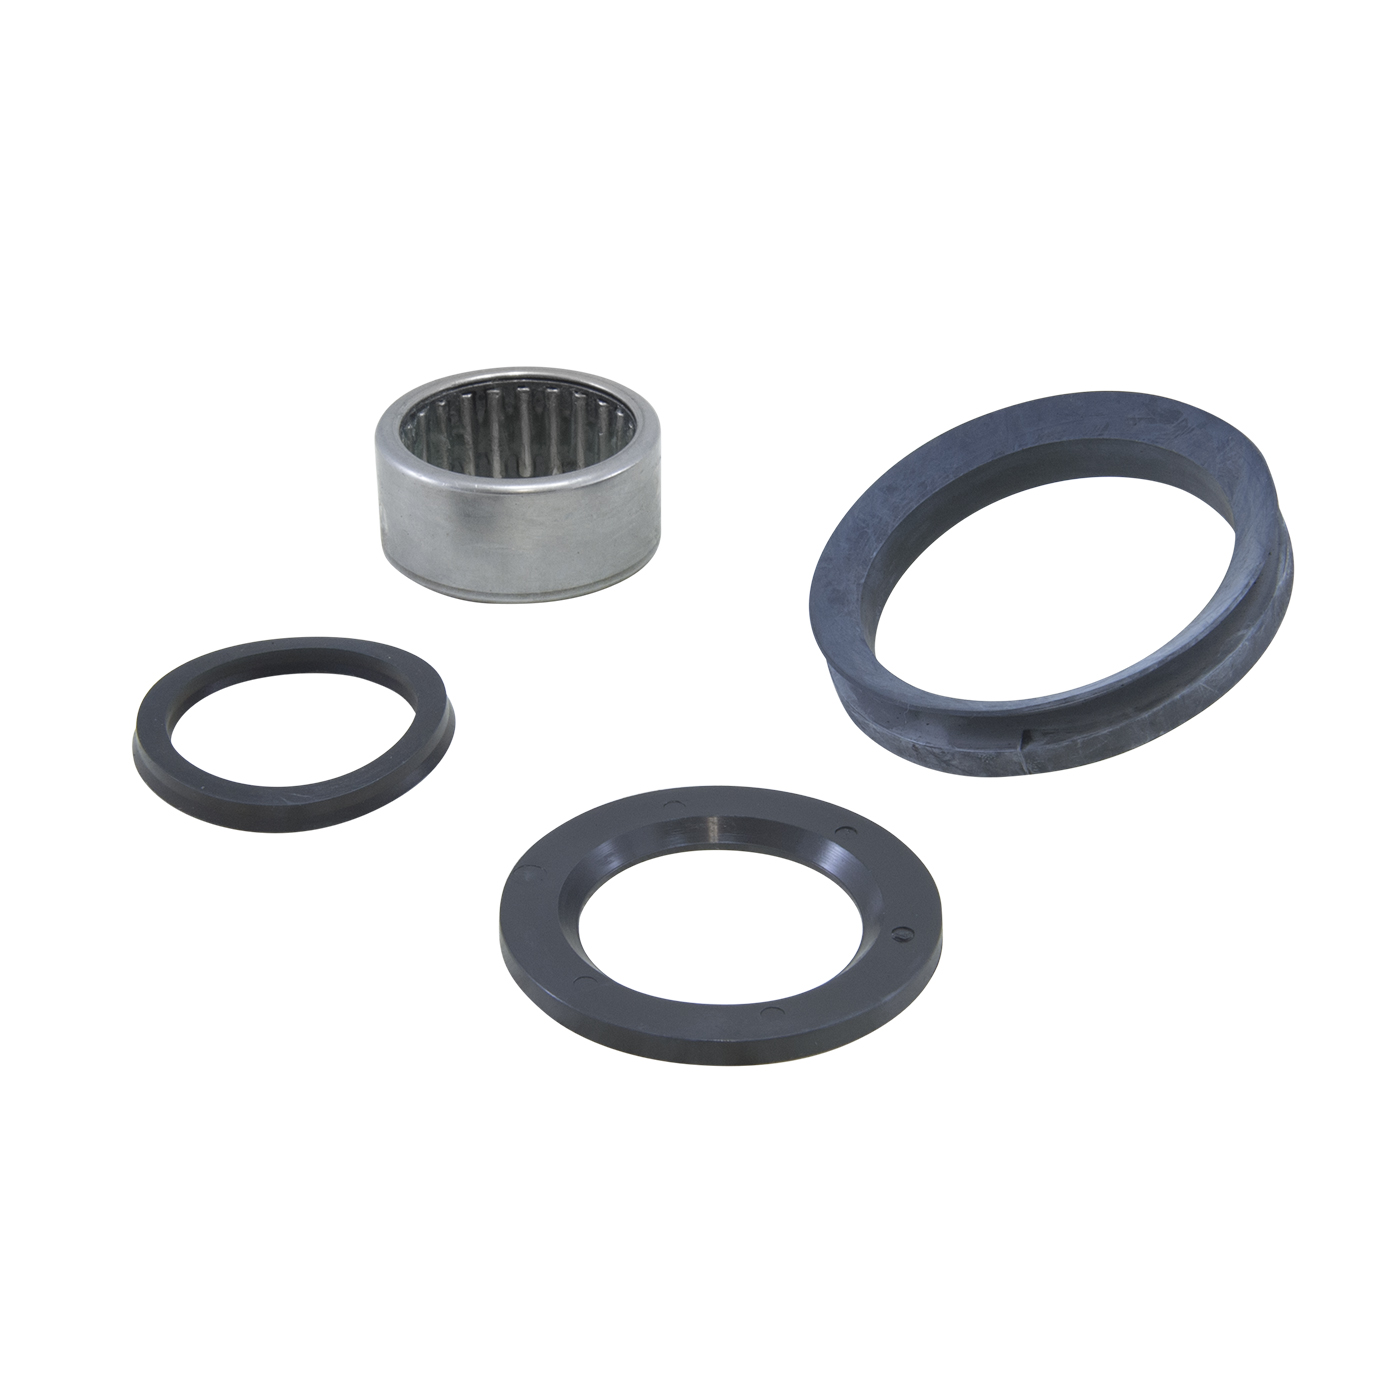 YSPSP-024 - Spindle bearing & Seal kit for Dana 50 & 60